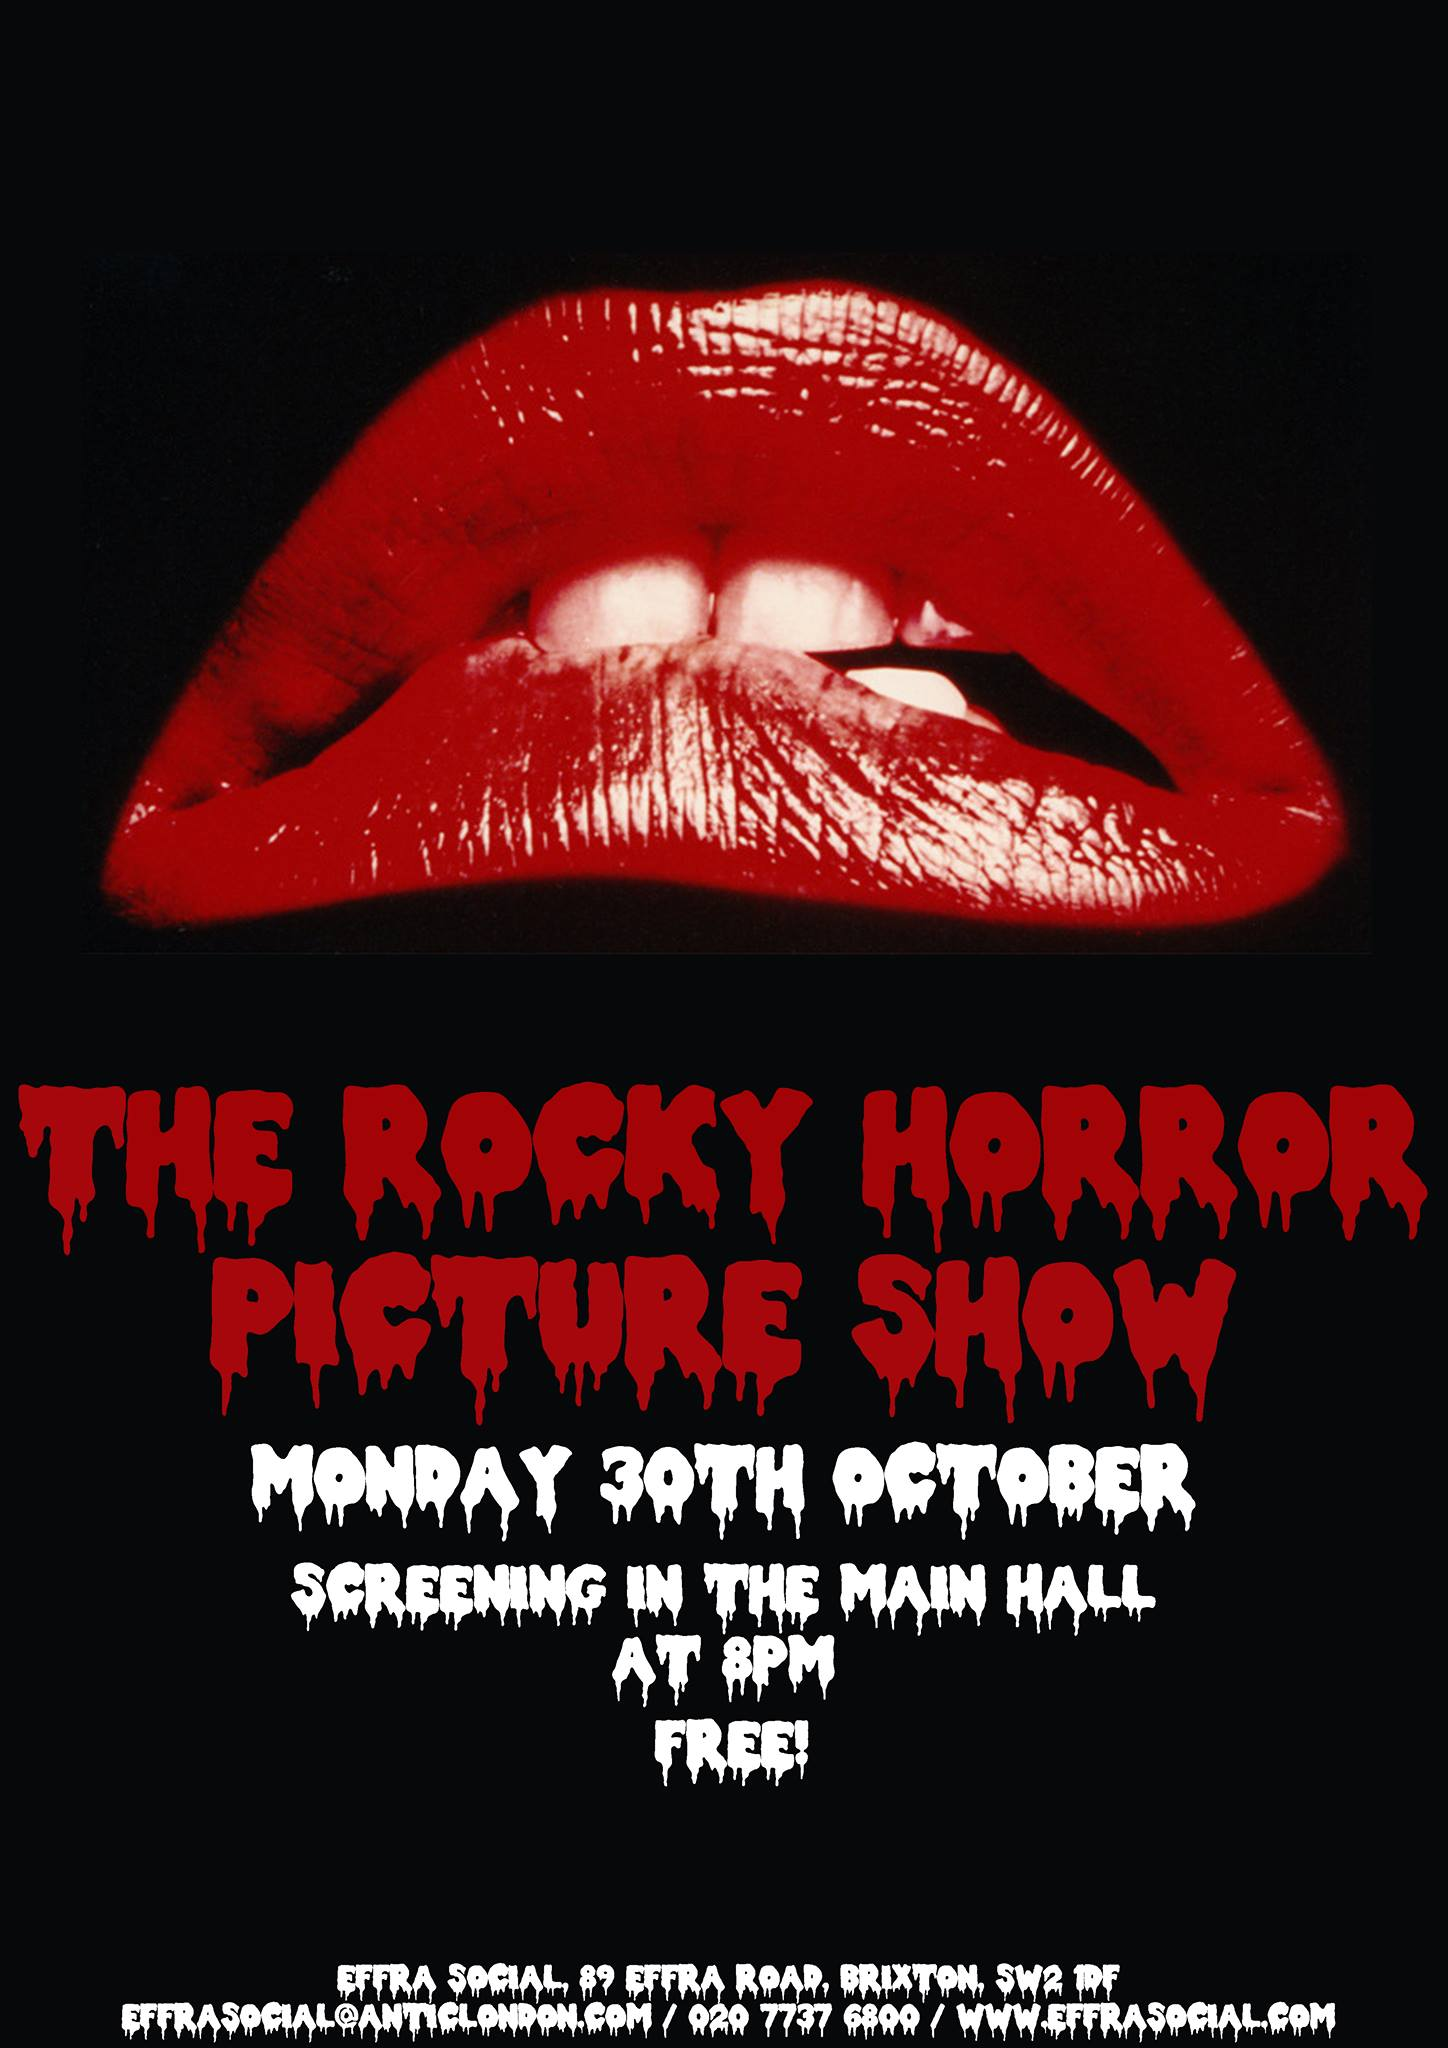 The Rocky Horror Picture Show FREE SCREENING